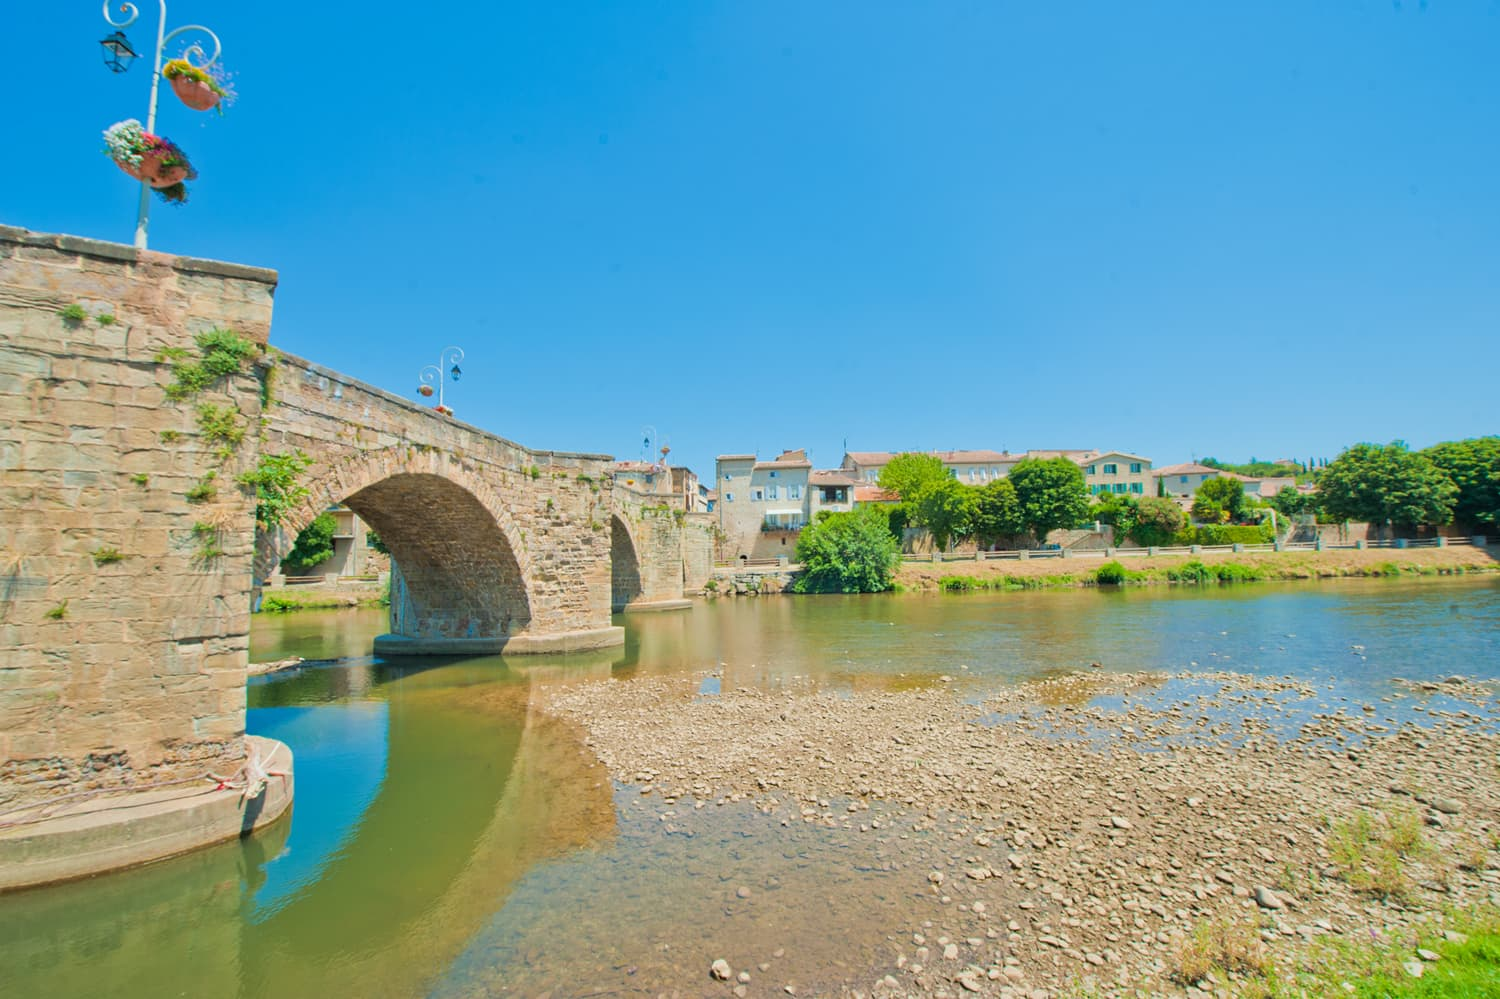 The River Aude in Limoux